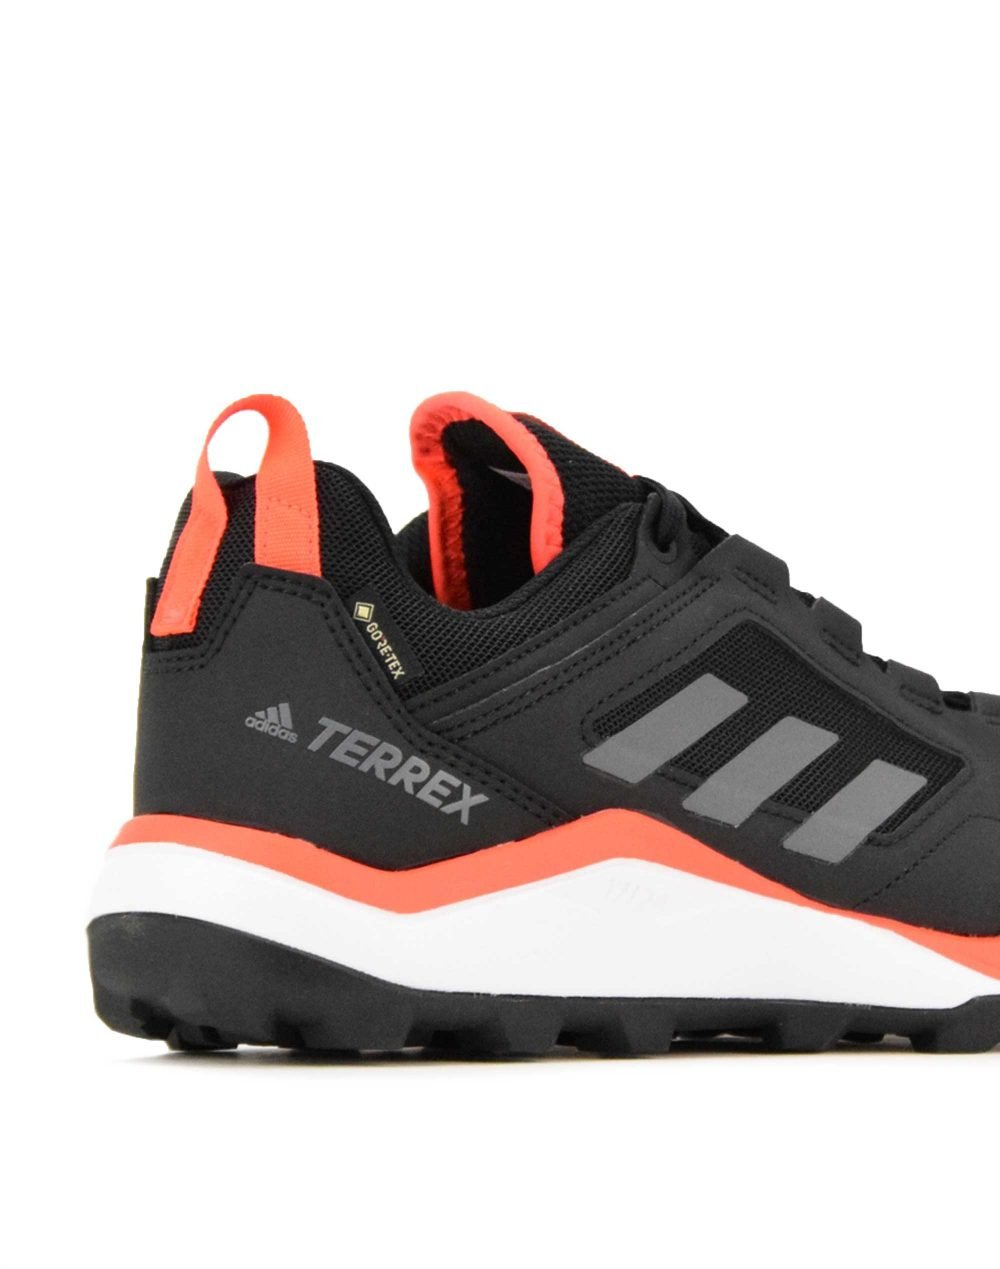 Adidas Terrex Agravic TR GTX (EF6868) Core Black/Grey Four/Solar Red